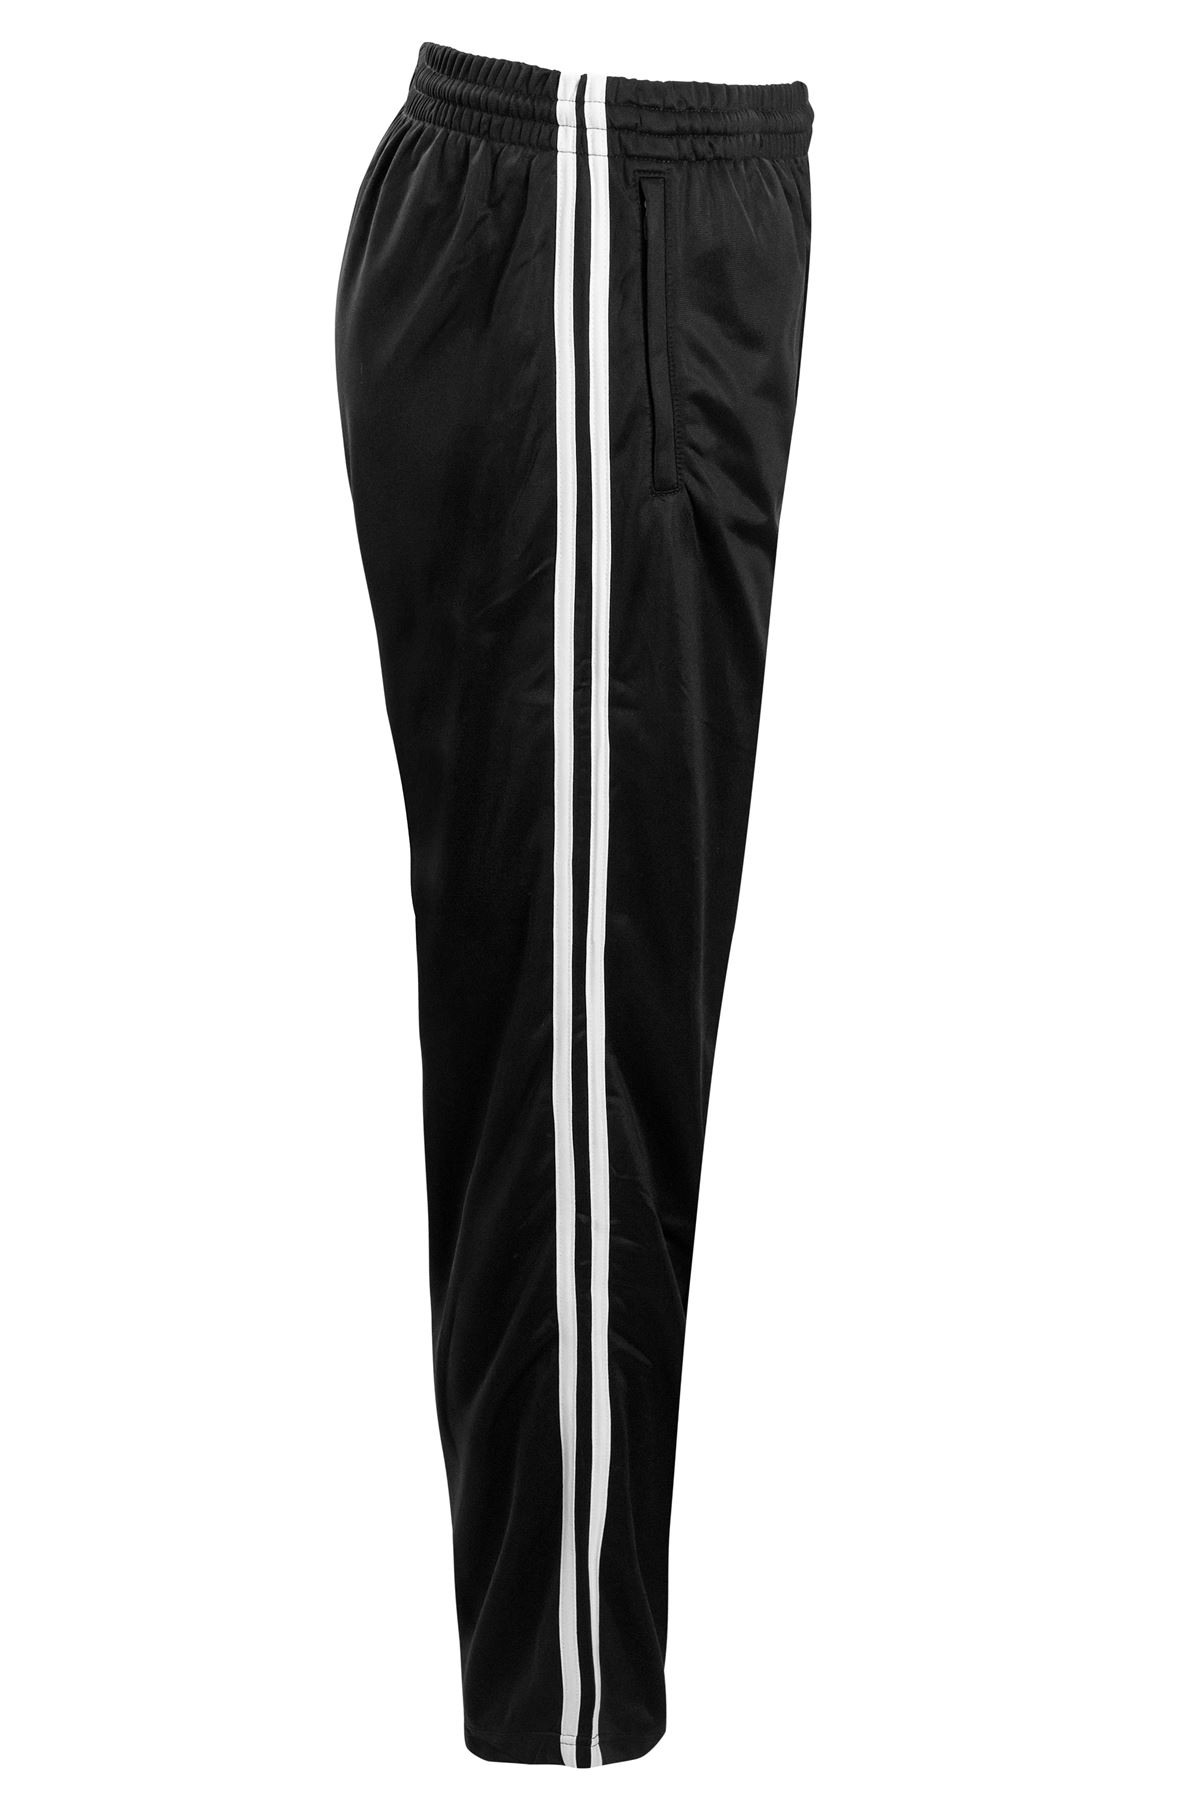 Mens-Tracksuit-Joggers-Jogging-Striped-Gym-Sports-Silky-Bottoms-Trousers-Pants thumbnail 6